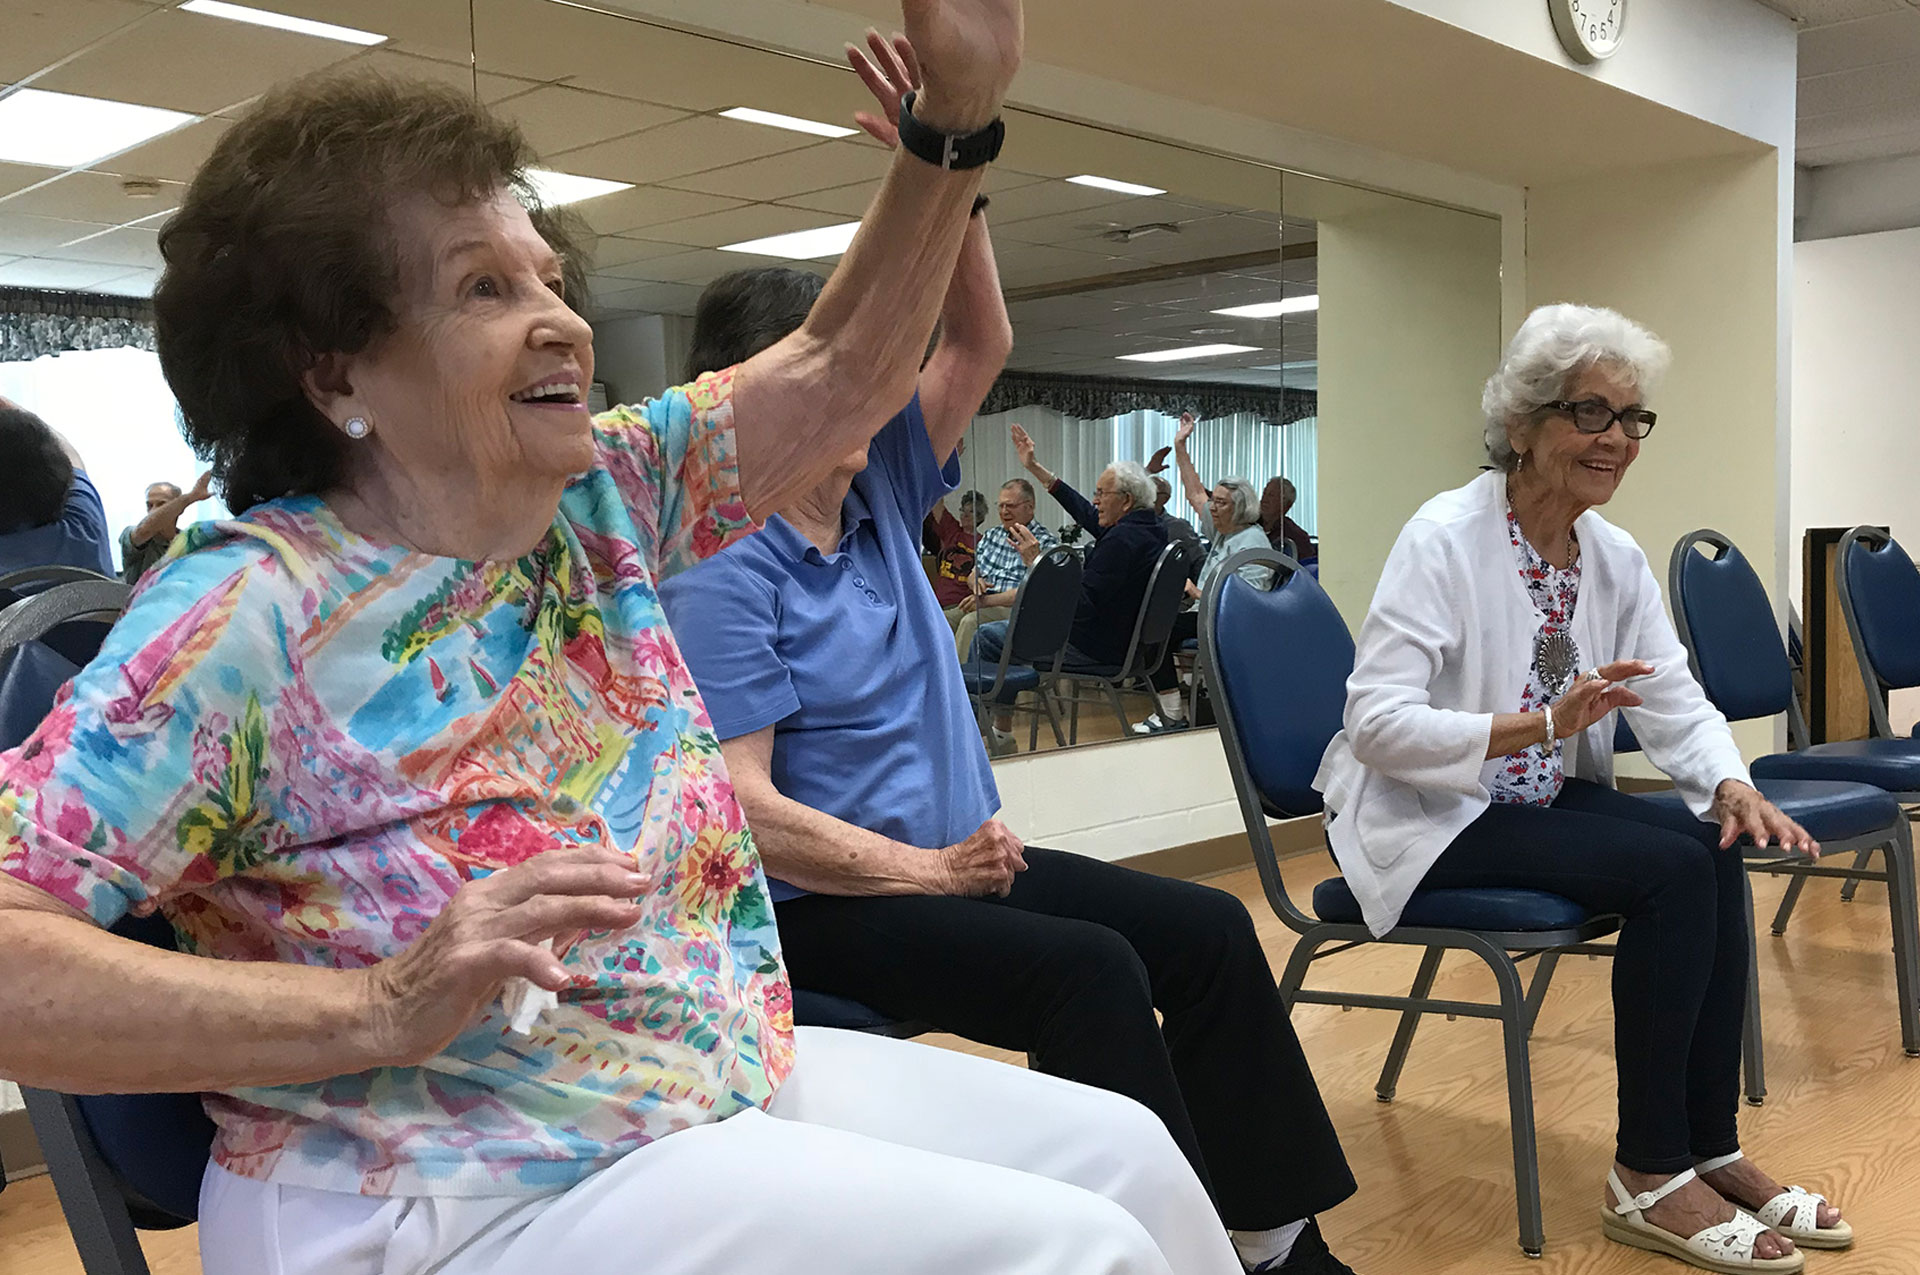 Balance Practice at Senior Center